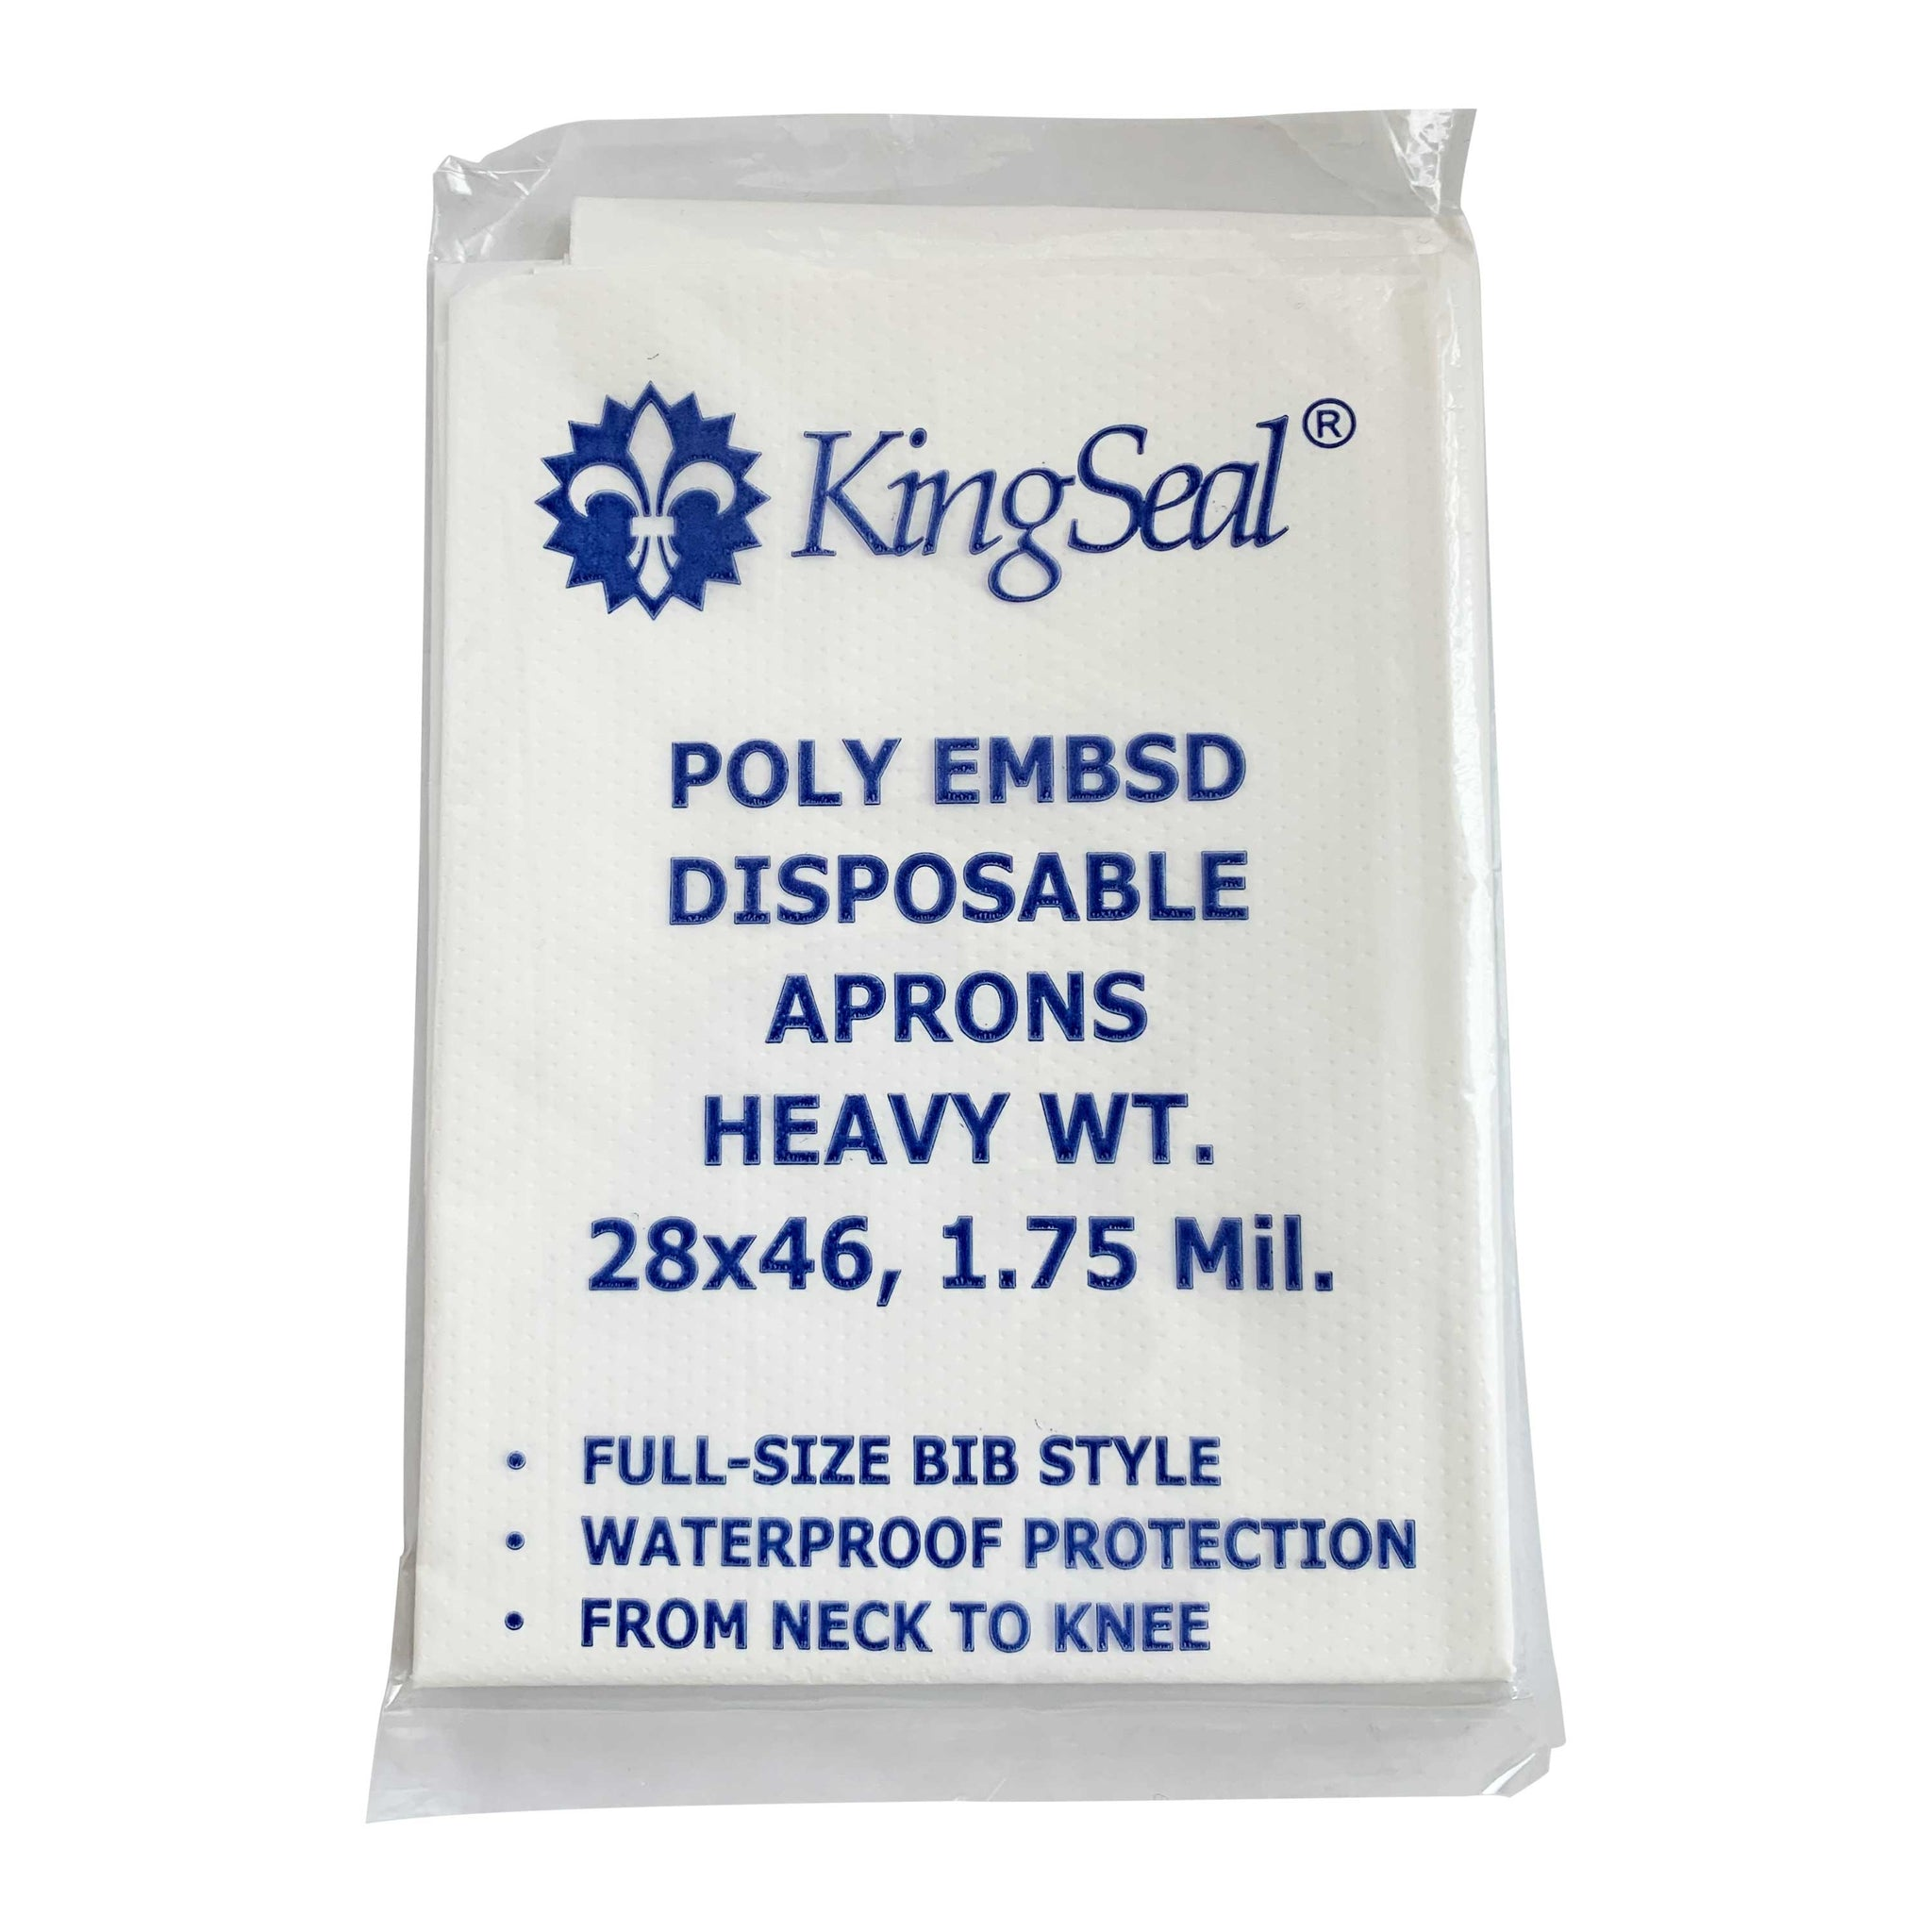 10 WHITE DISPOSABLE BIB APRONS SIZE 28x46 INDIVIDUALLY PACKAGED FREE SHIPPING